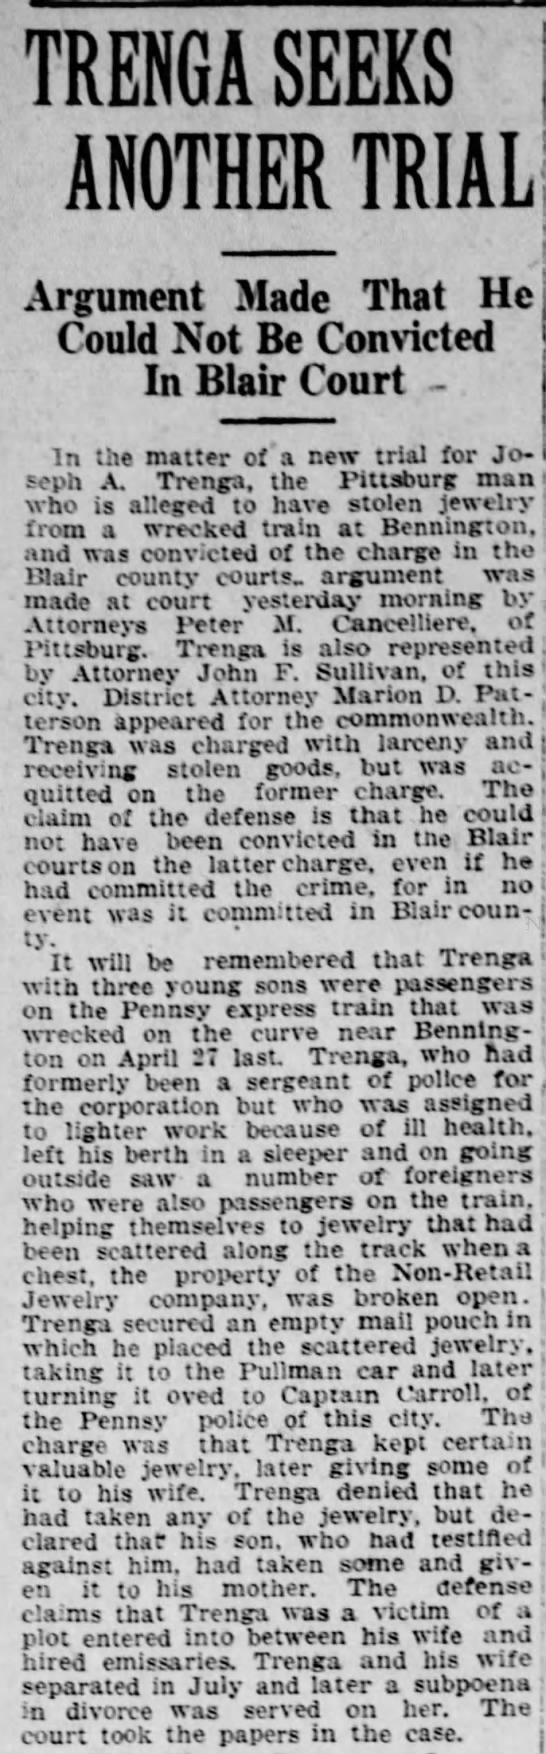 Altoona Tribune 9 May 1922 Trenga seeks new Trial -